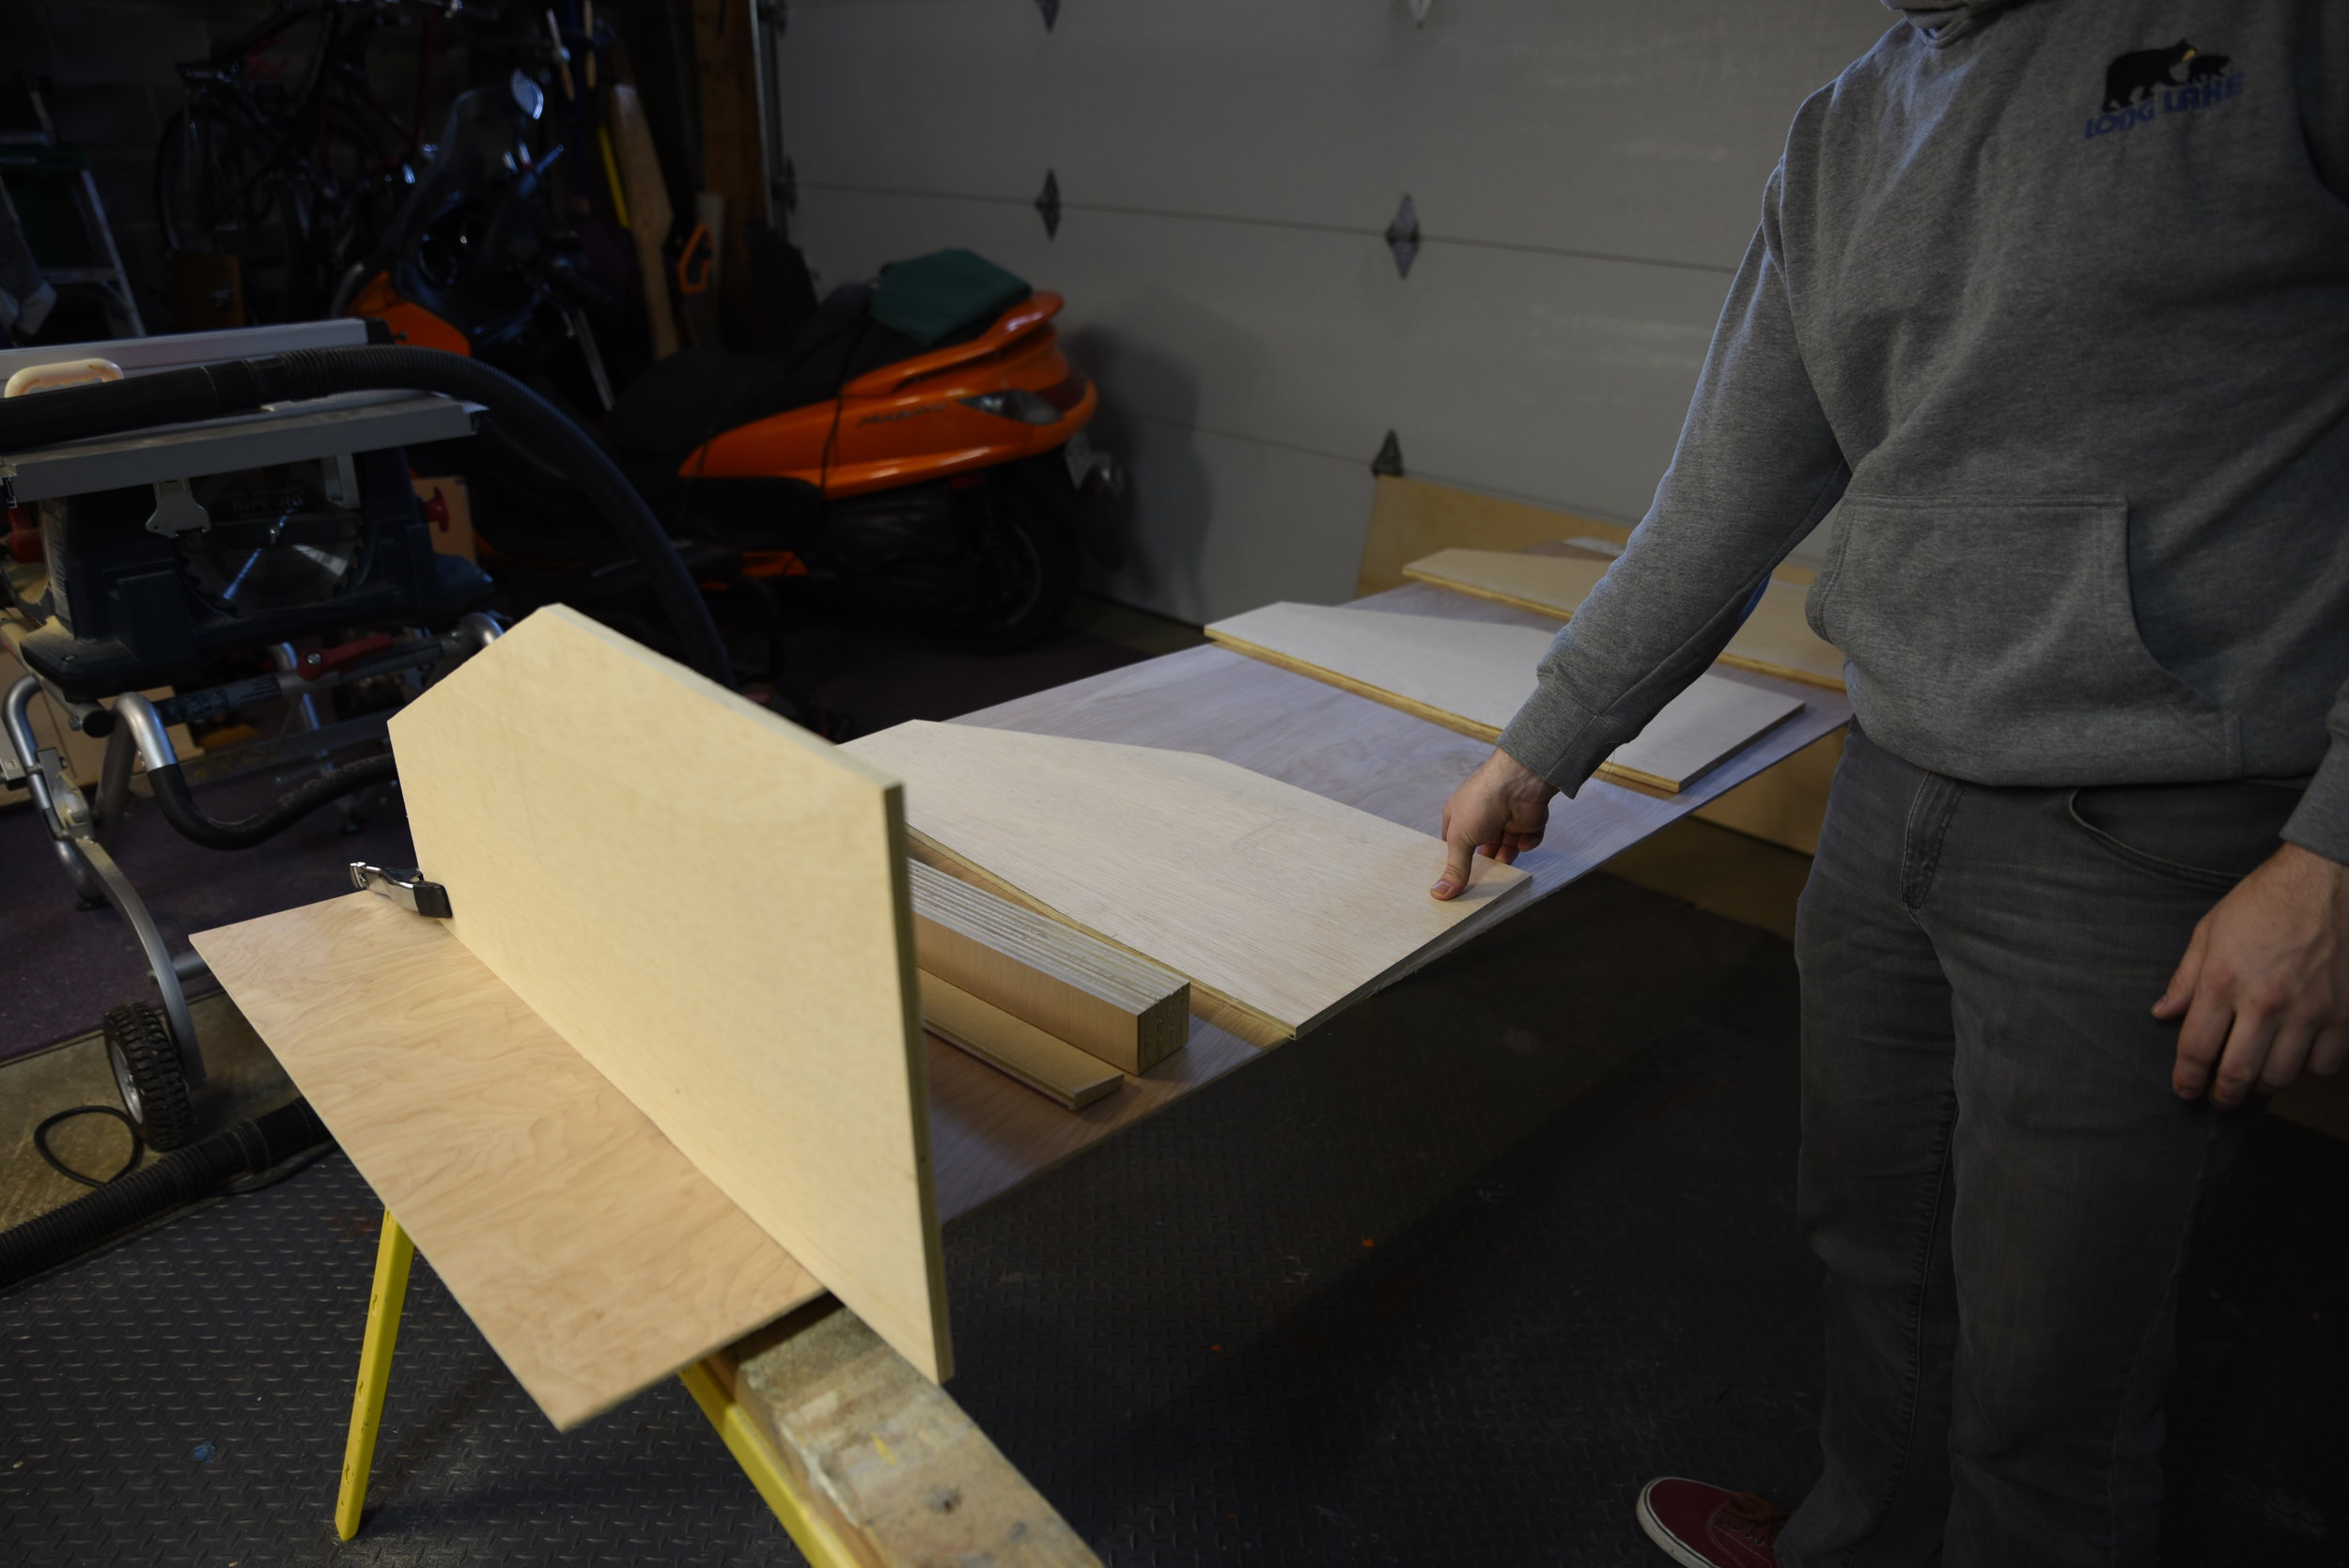 Ian lays out all of the wooden pieces of the cabinetry, while planning the best way to fasten them.